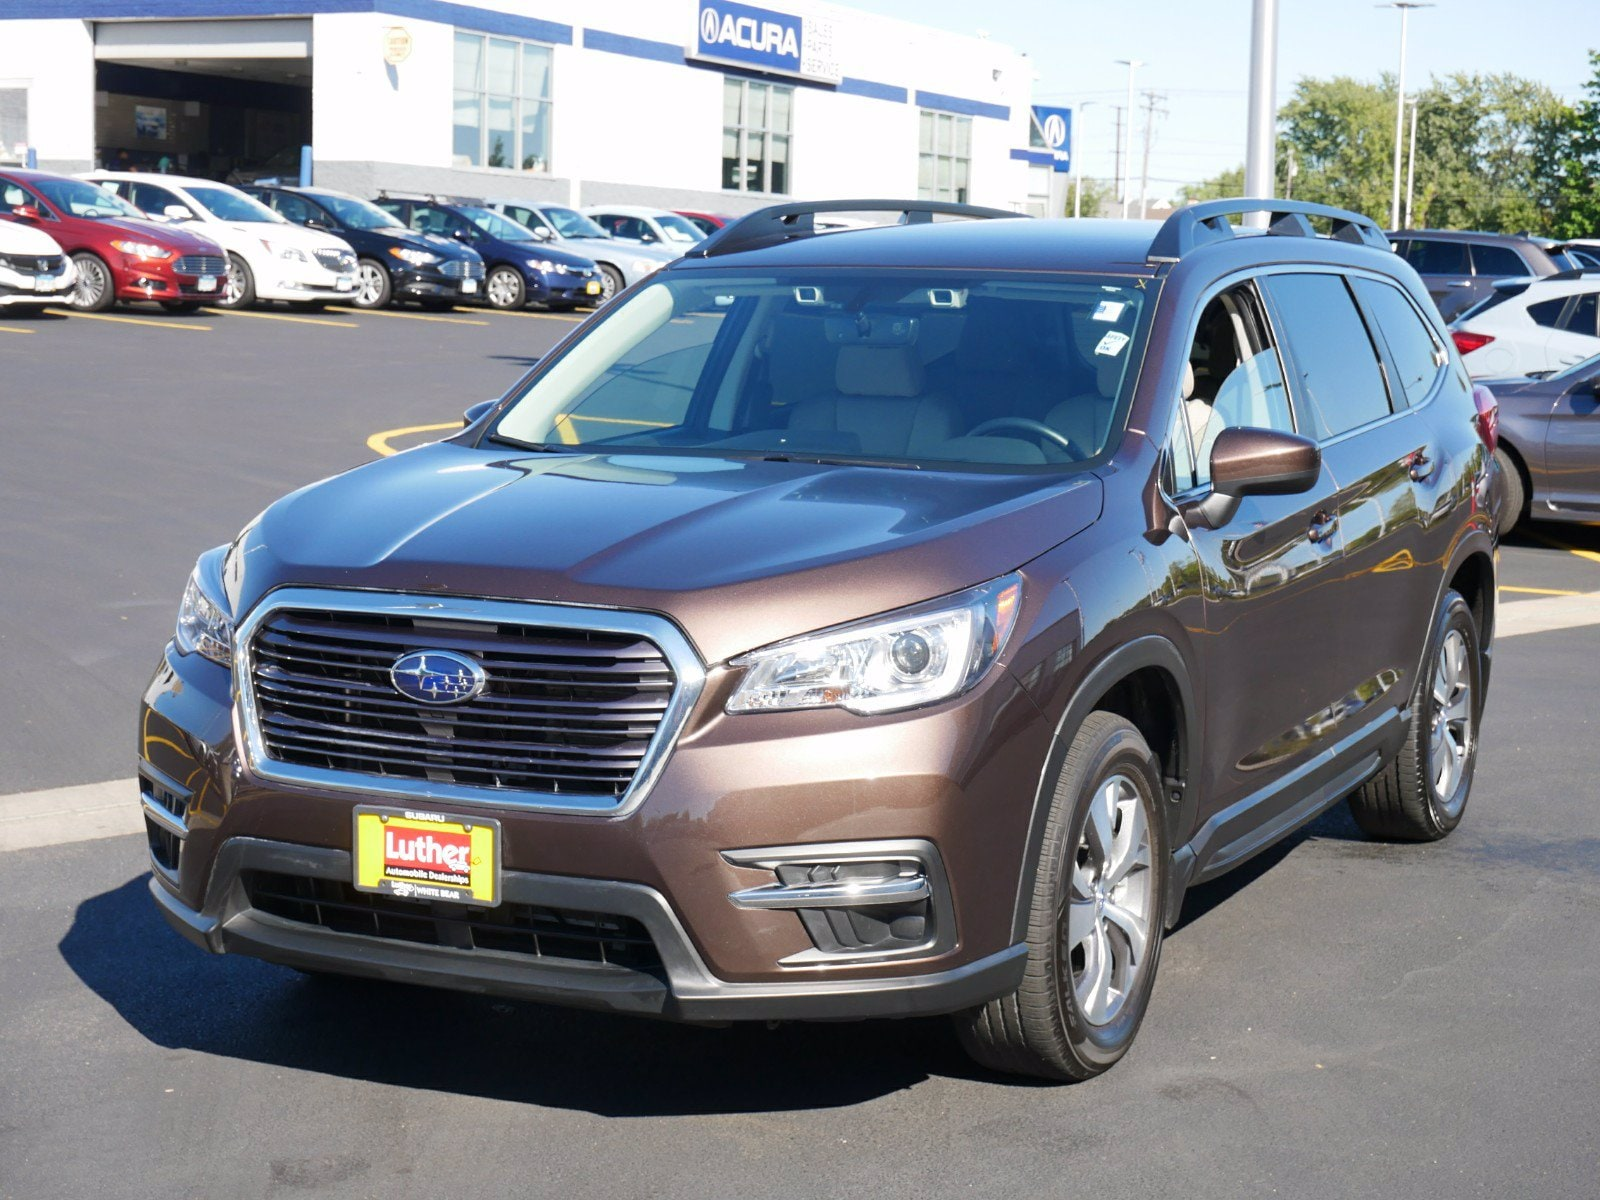 Used 2020 Subaru Ascent Premium with VIN 4S4WMAFD2L3447913 for sale in Vadnais Heights, Minnesota